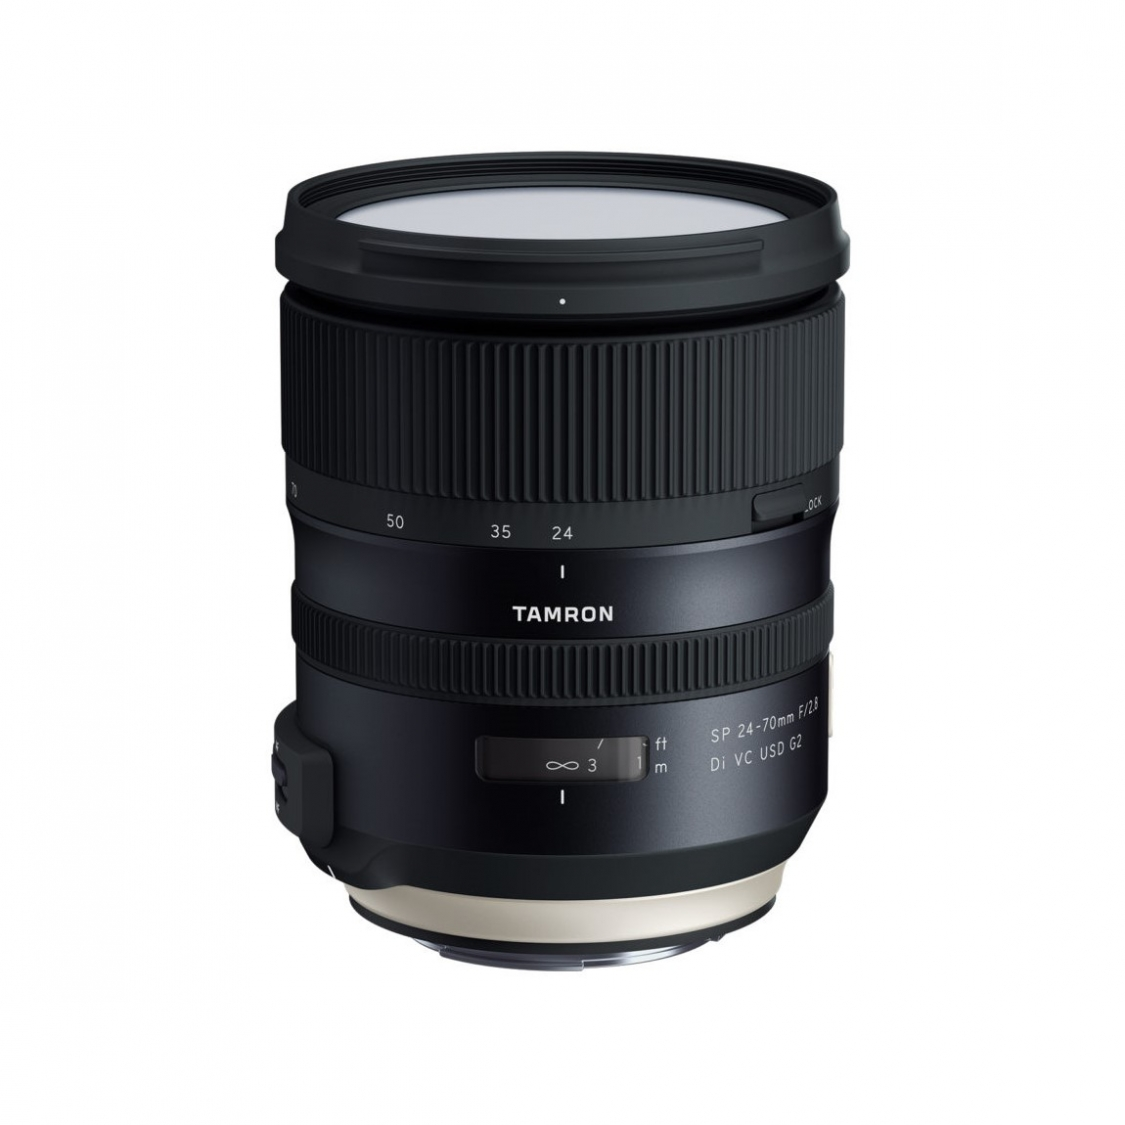 Tamron 24-70mm F2.8 G2 DI VC USD SP Lens for Canon EF Mount